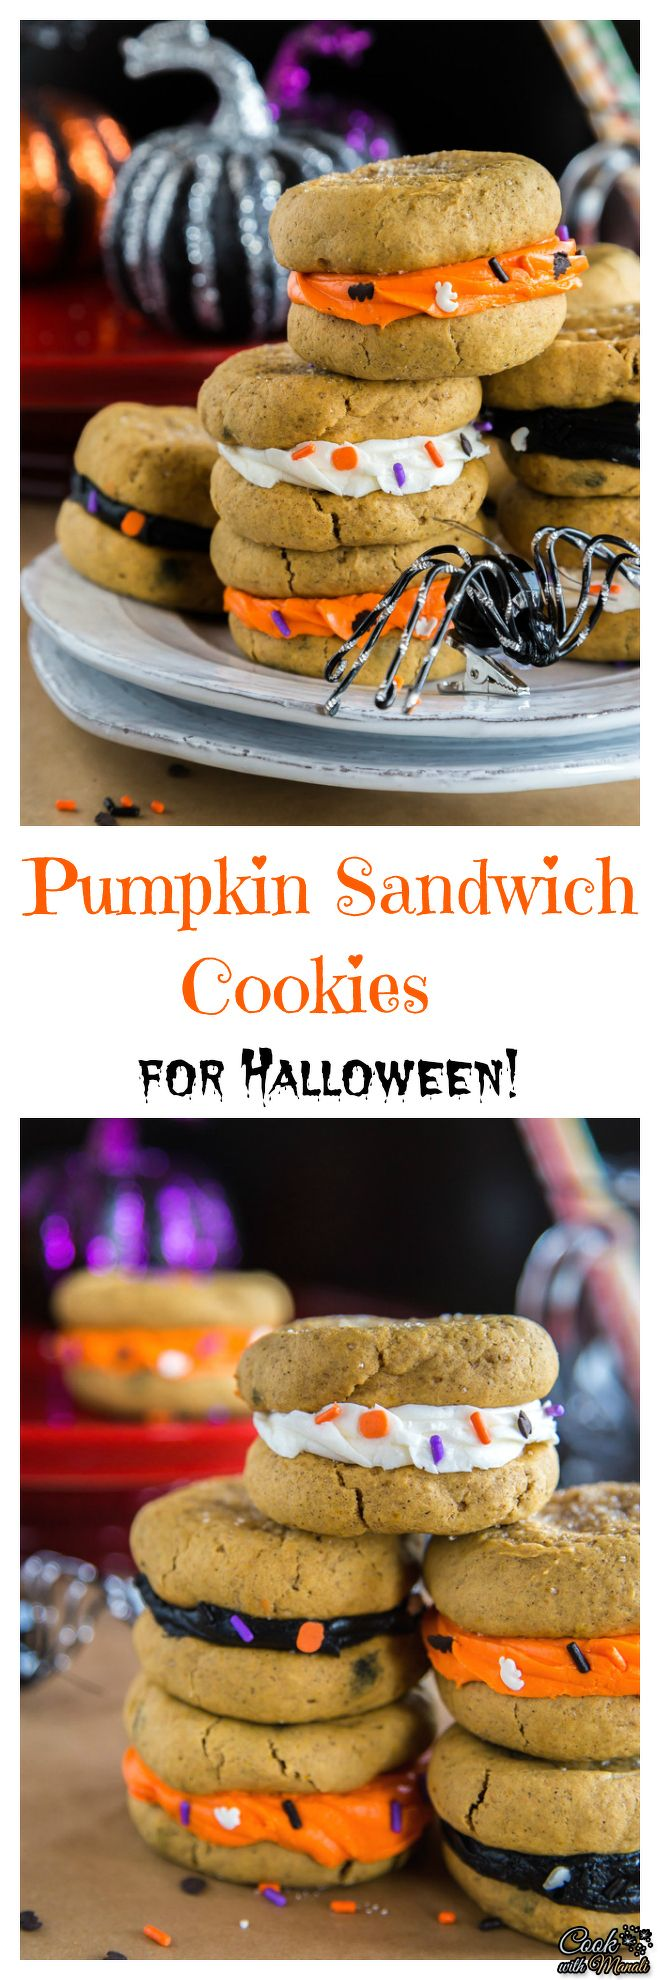 Melt-in-your-mouth Pumpkin Sandwich Cookies with spooky sprinkles are perfect for Halloween Entertaining! Find the recipe on www.cookwithmanali.com